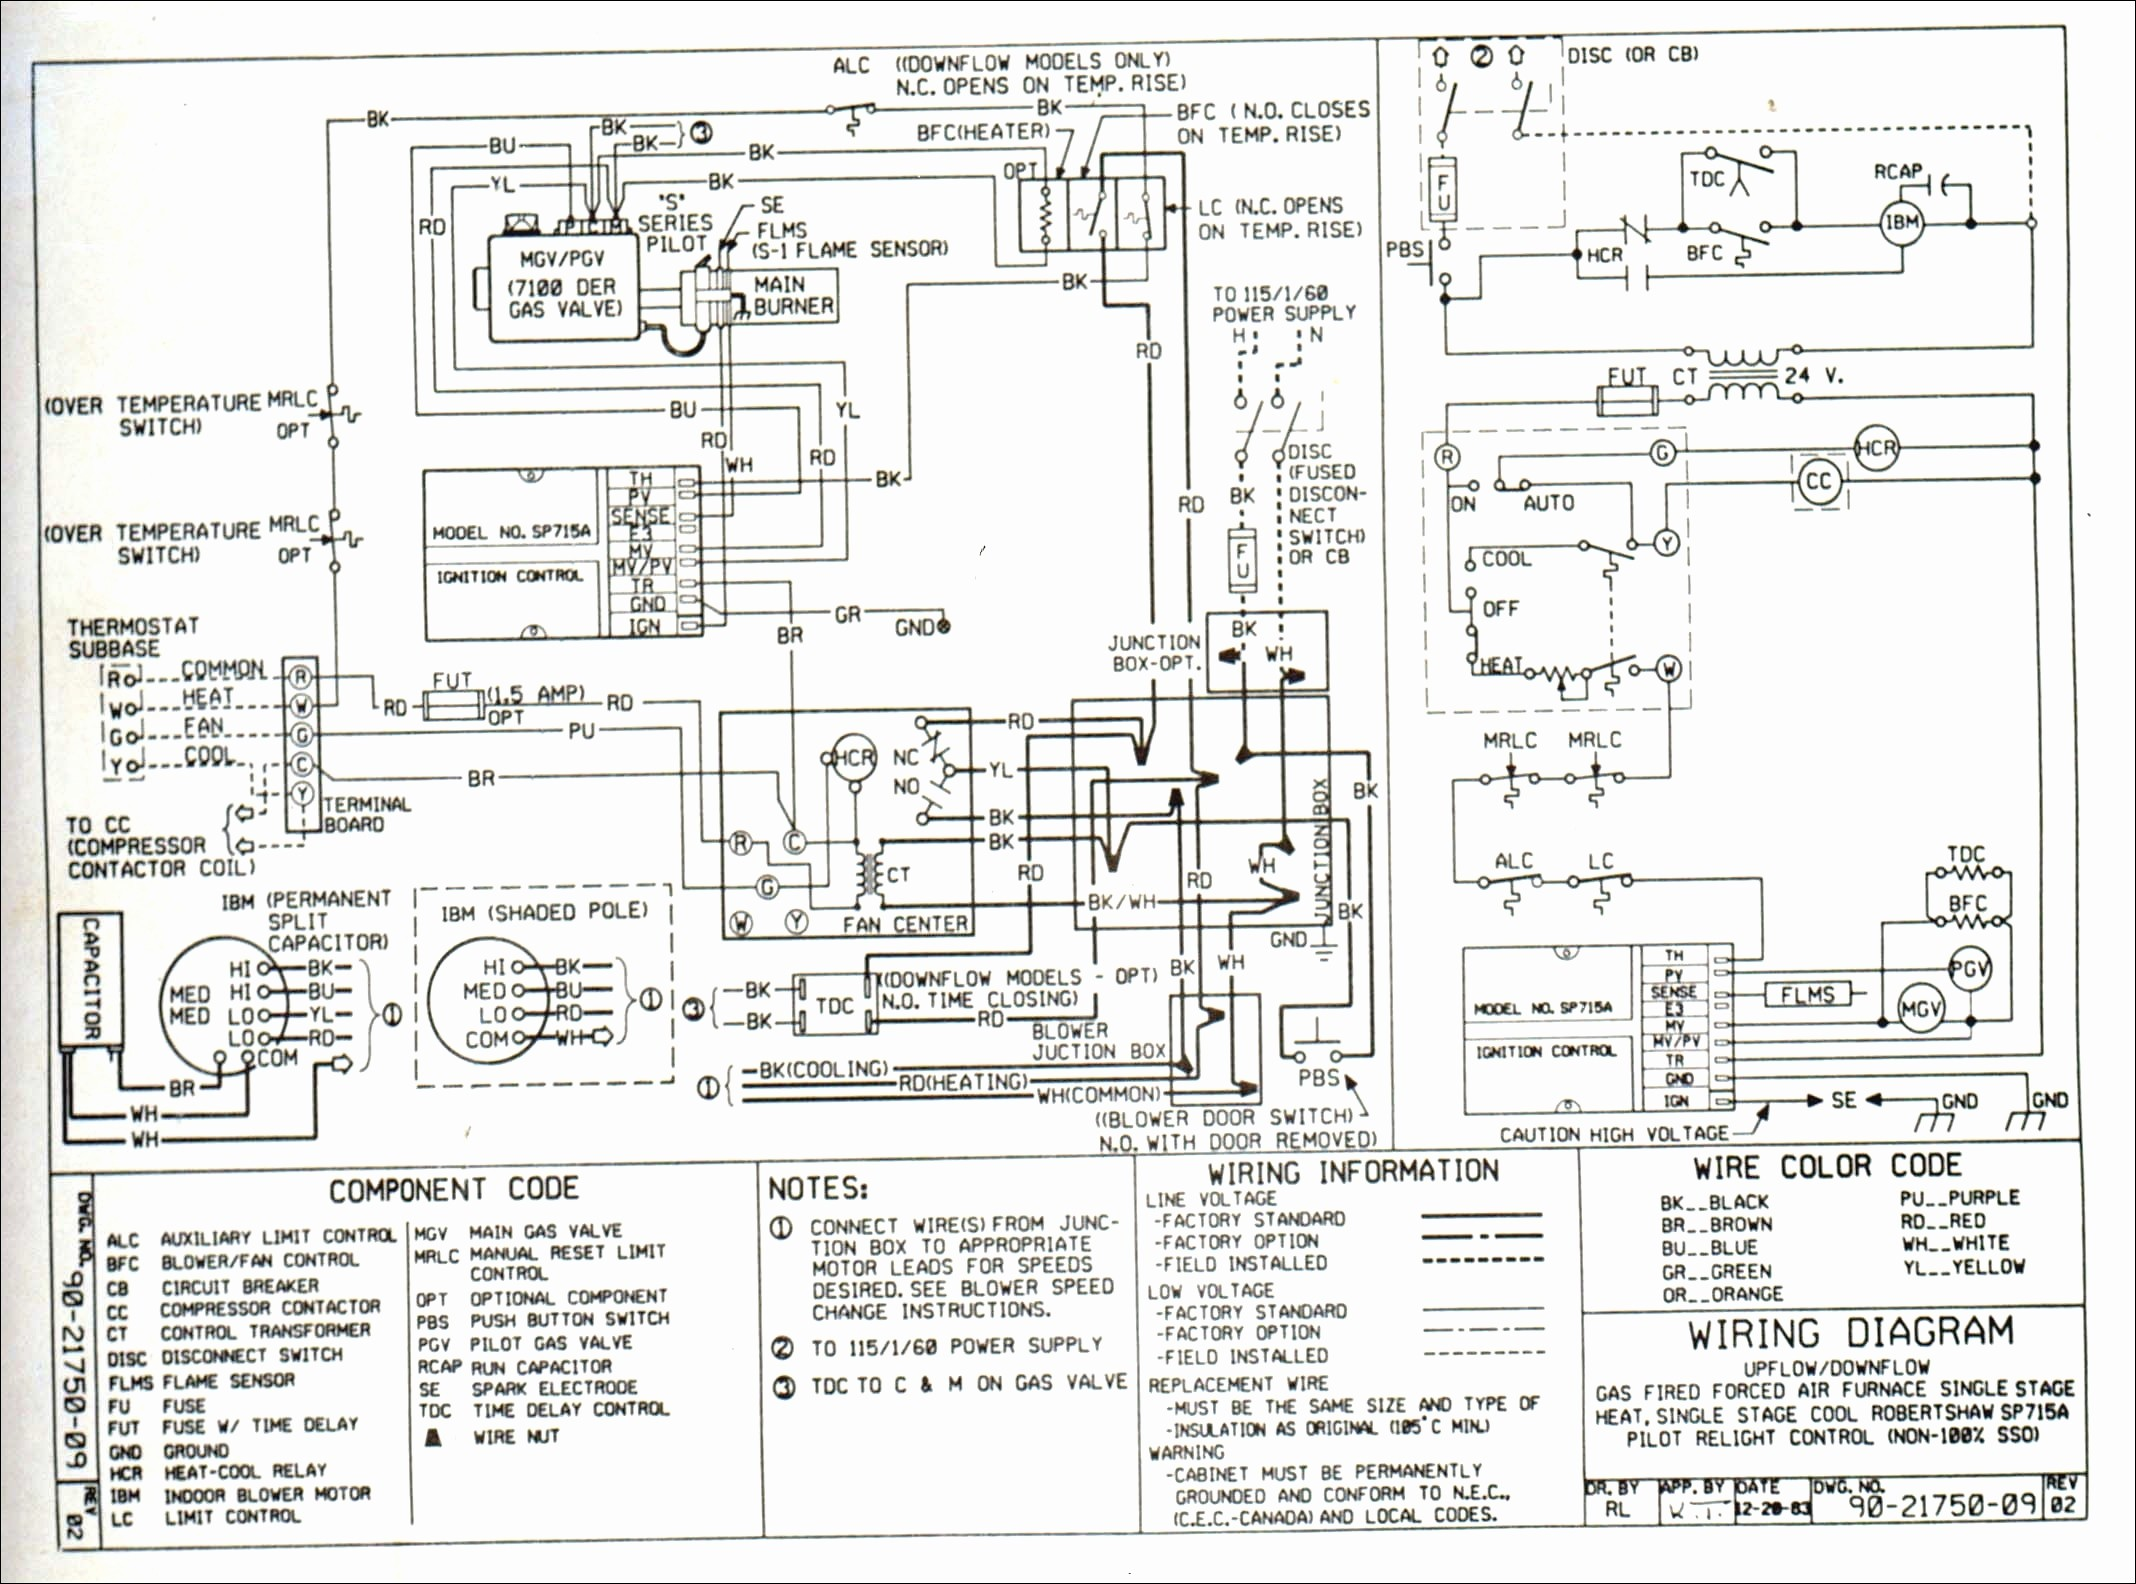 Diagram Garbage Disposal Electrical Schematic Wiring Diagram Full Version Hd Quality Wiring Diagram Pdfbaskets Cafesecret Fr